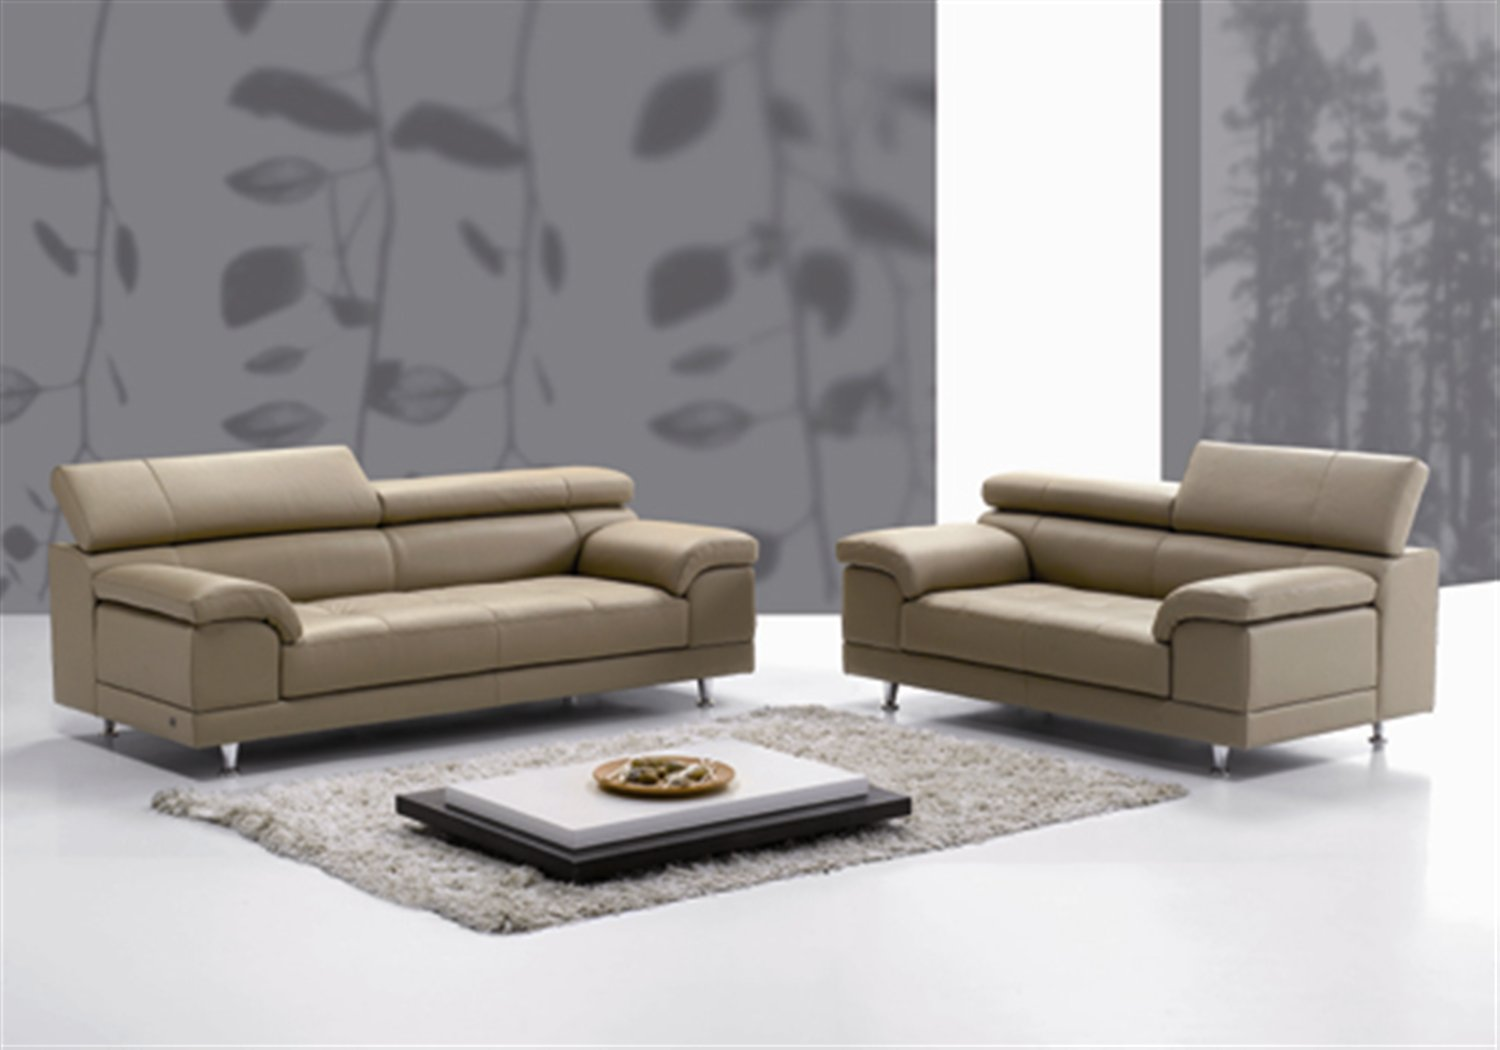 Italian leather sofas images for Furniture leather sofa